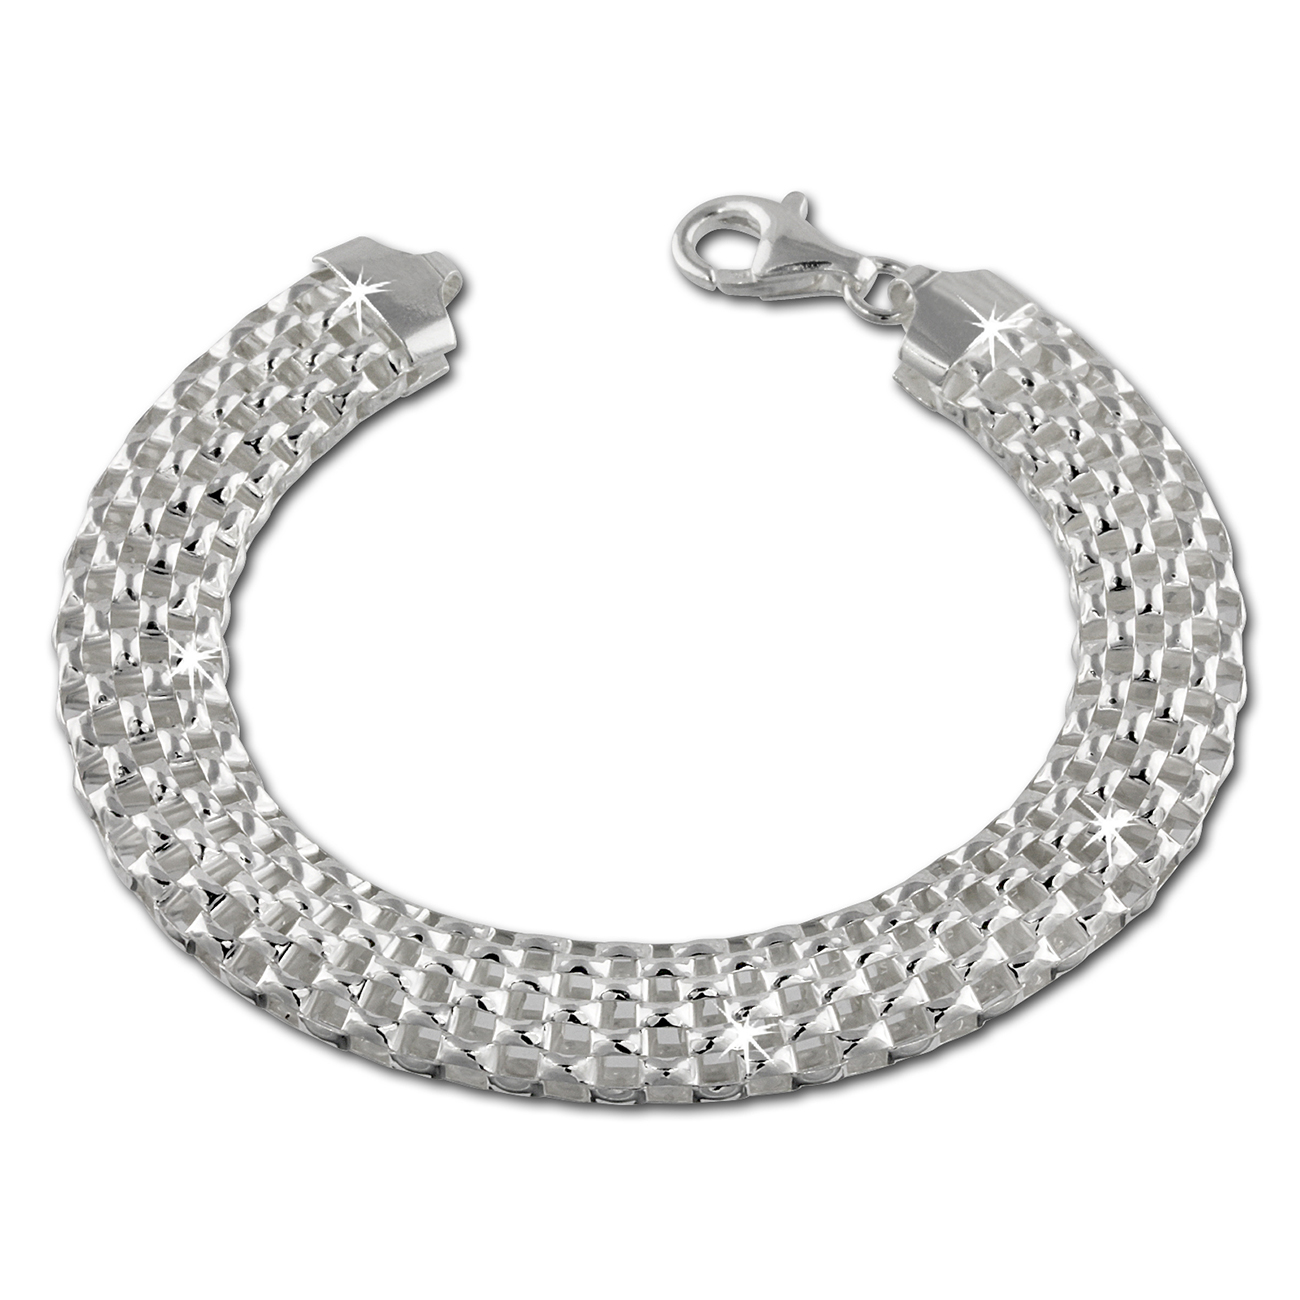 Silver Dream<br> bracelet braid 925<br>Sterling Silver D